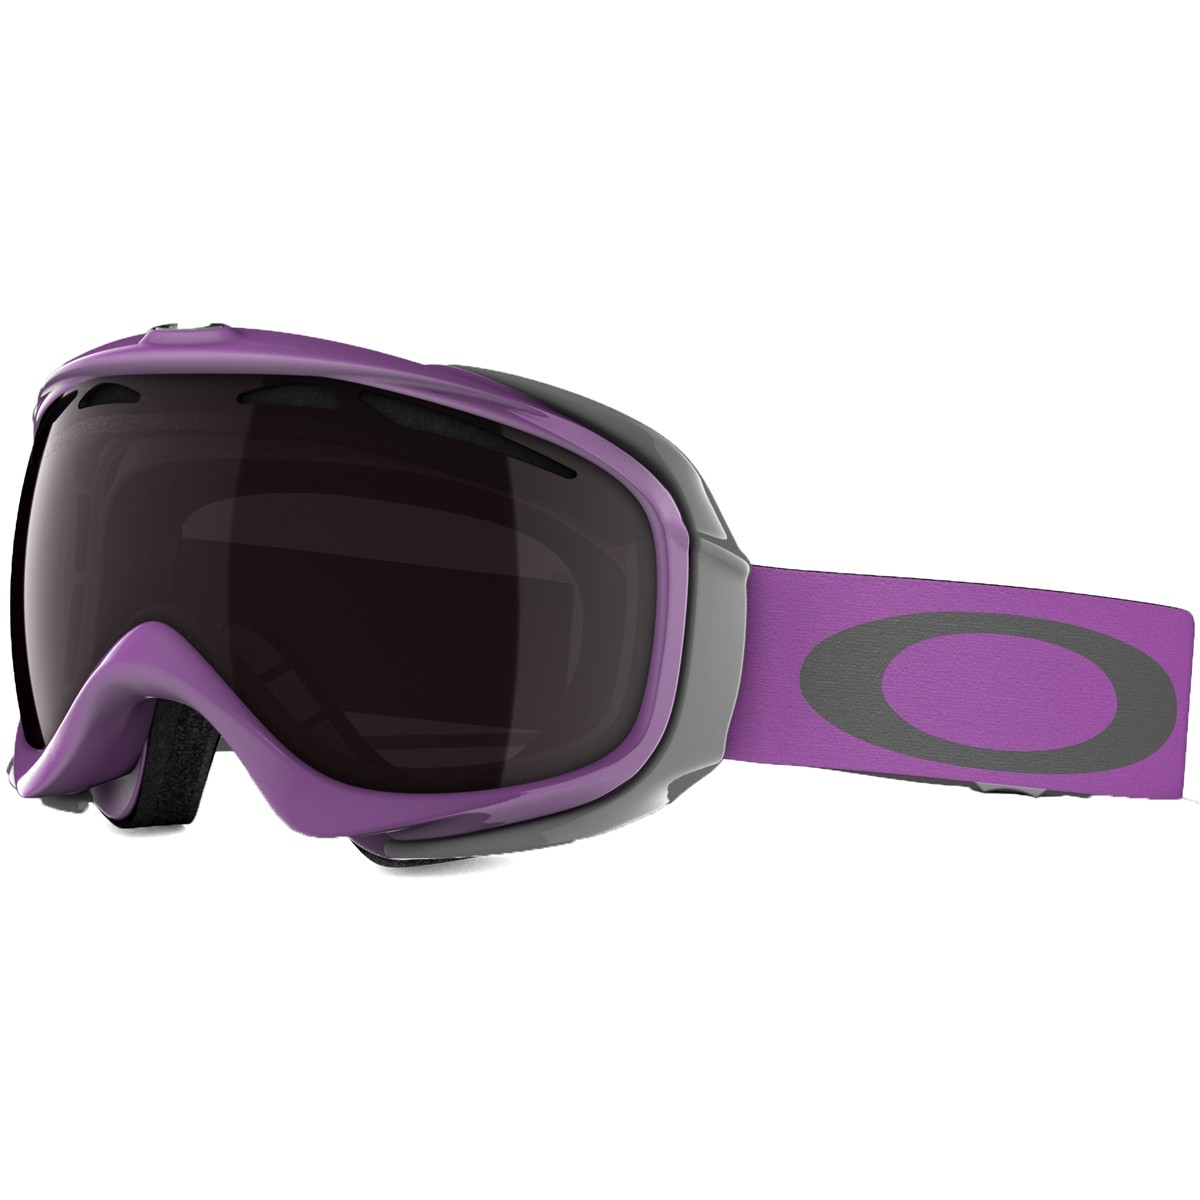 Oakley Elevate Snowboard Goggles 2015 - Purple Sage - Black Rose Iridium